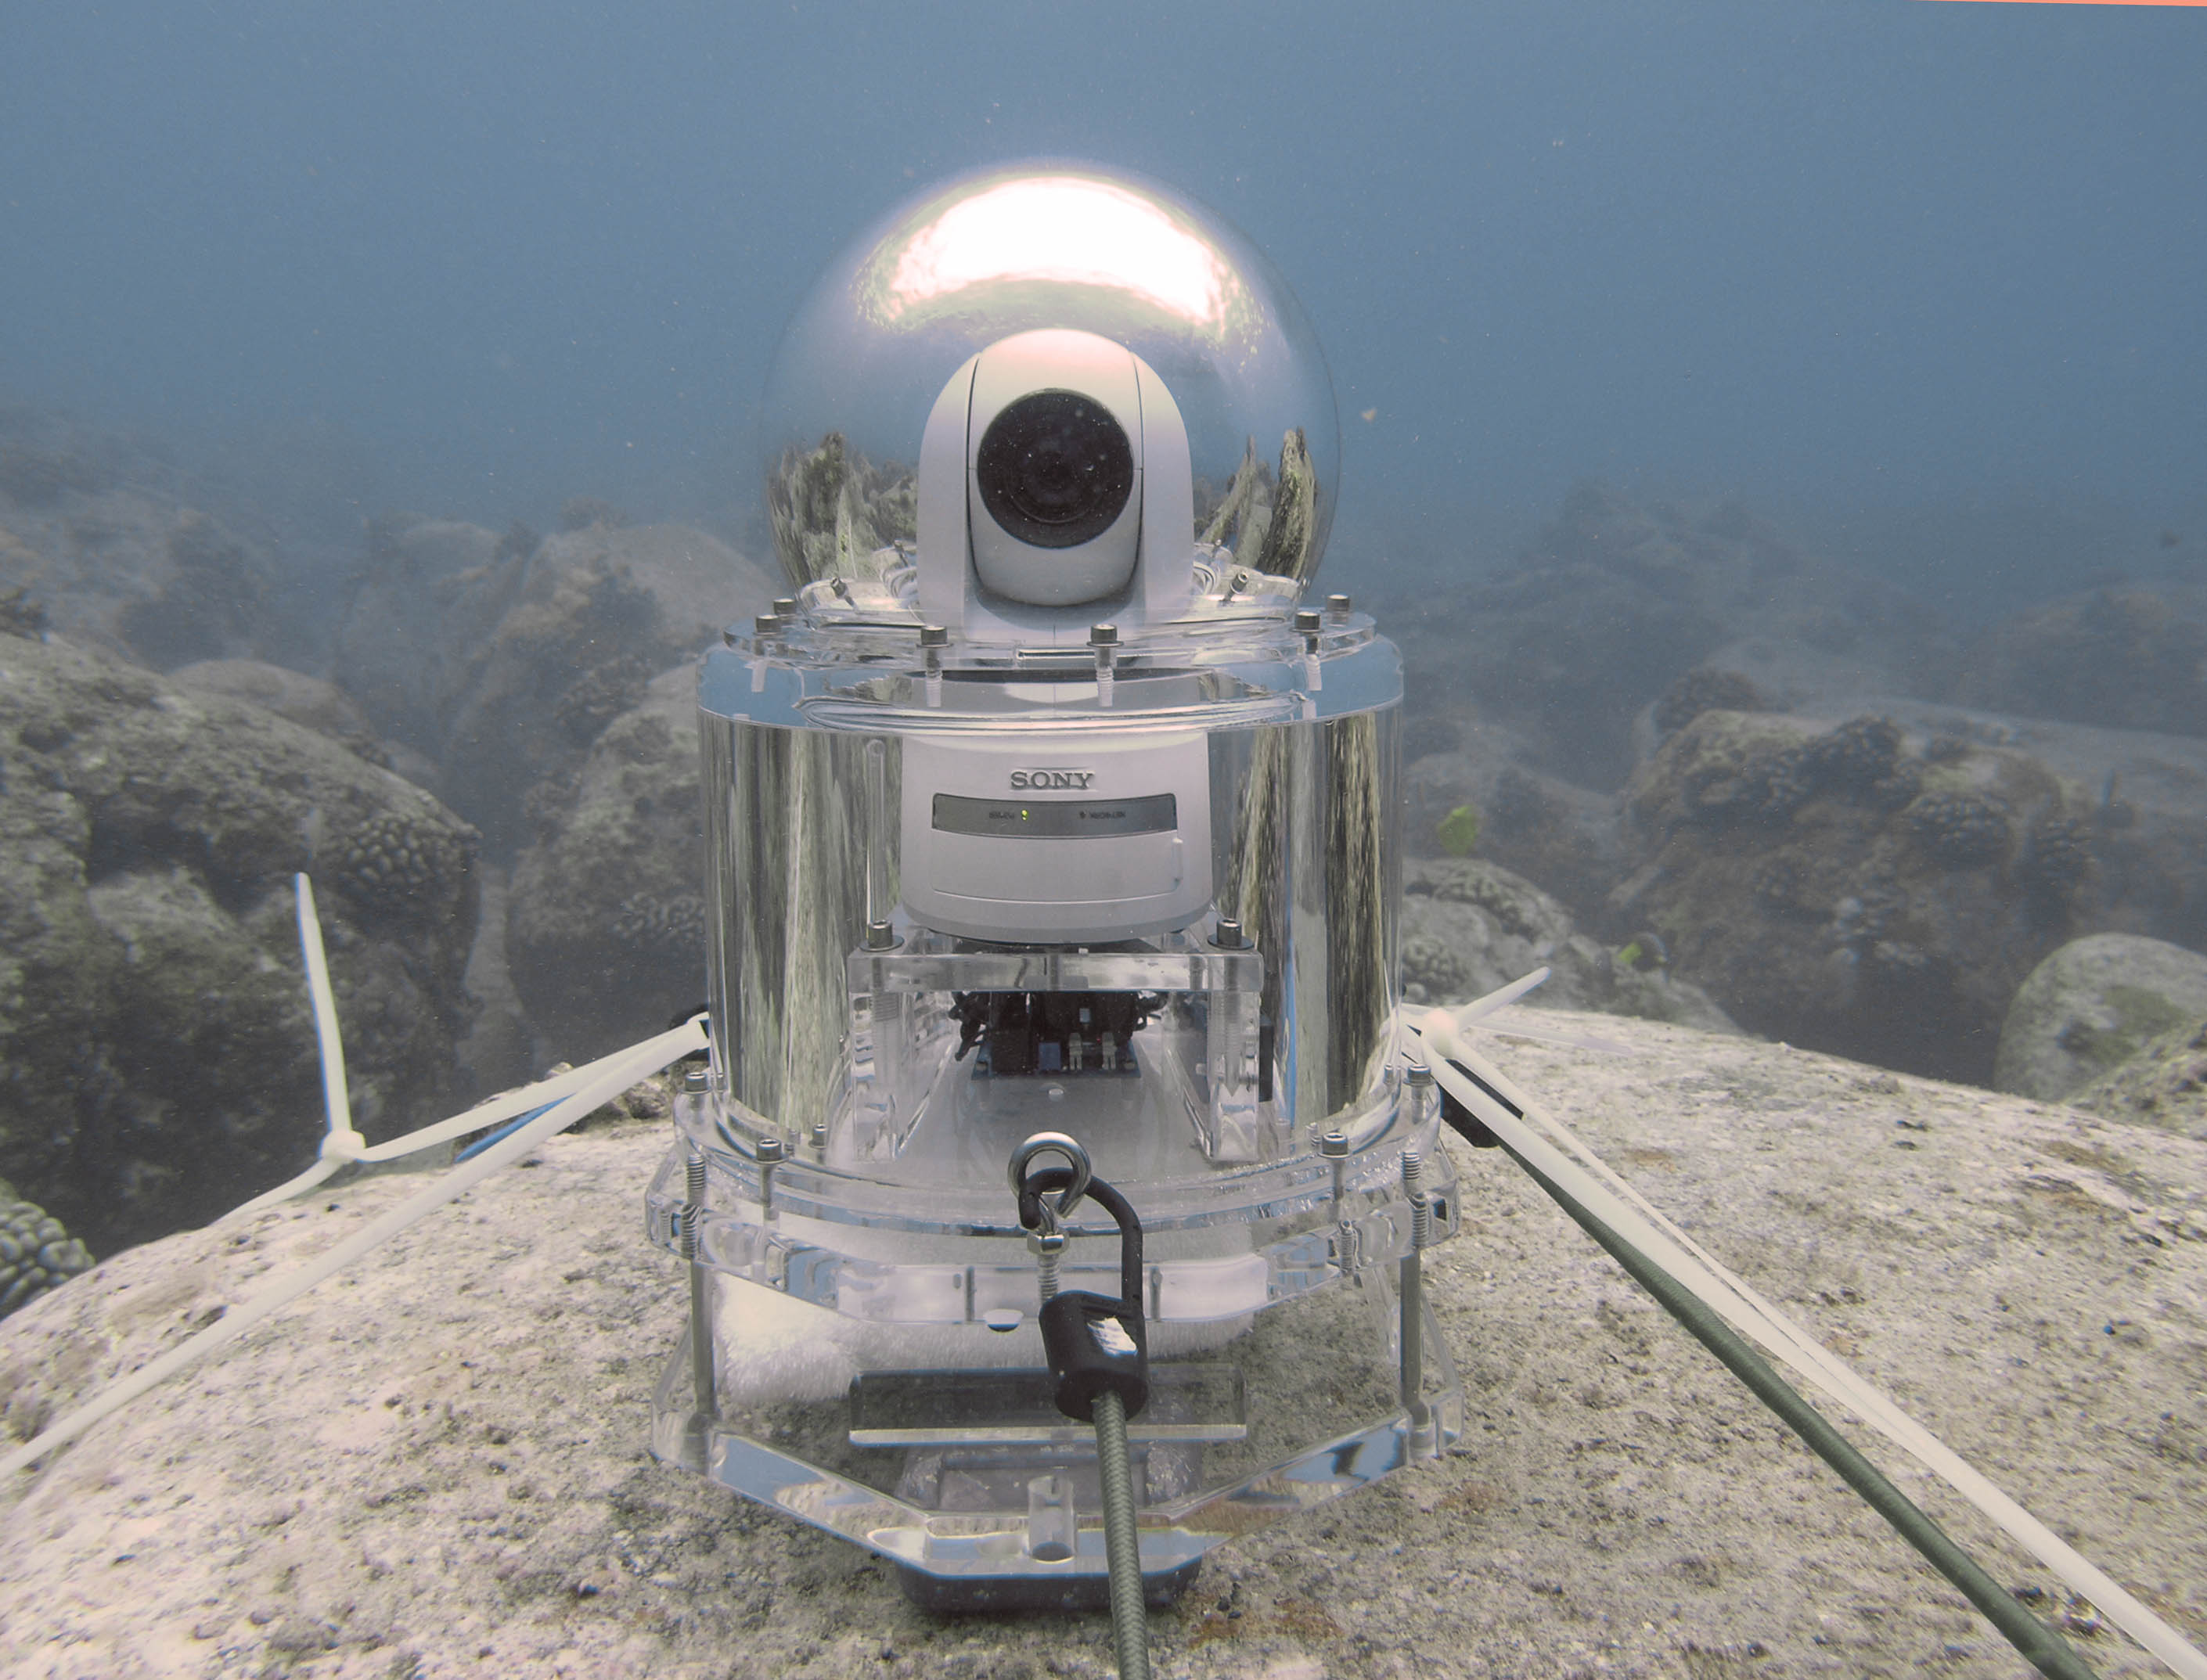 Underwater video camera deployed in Kona, Hawaii